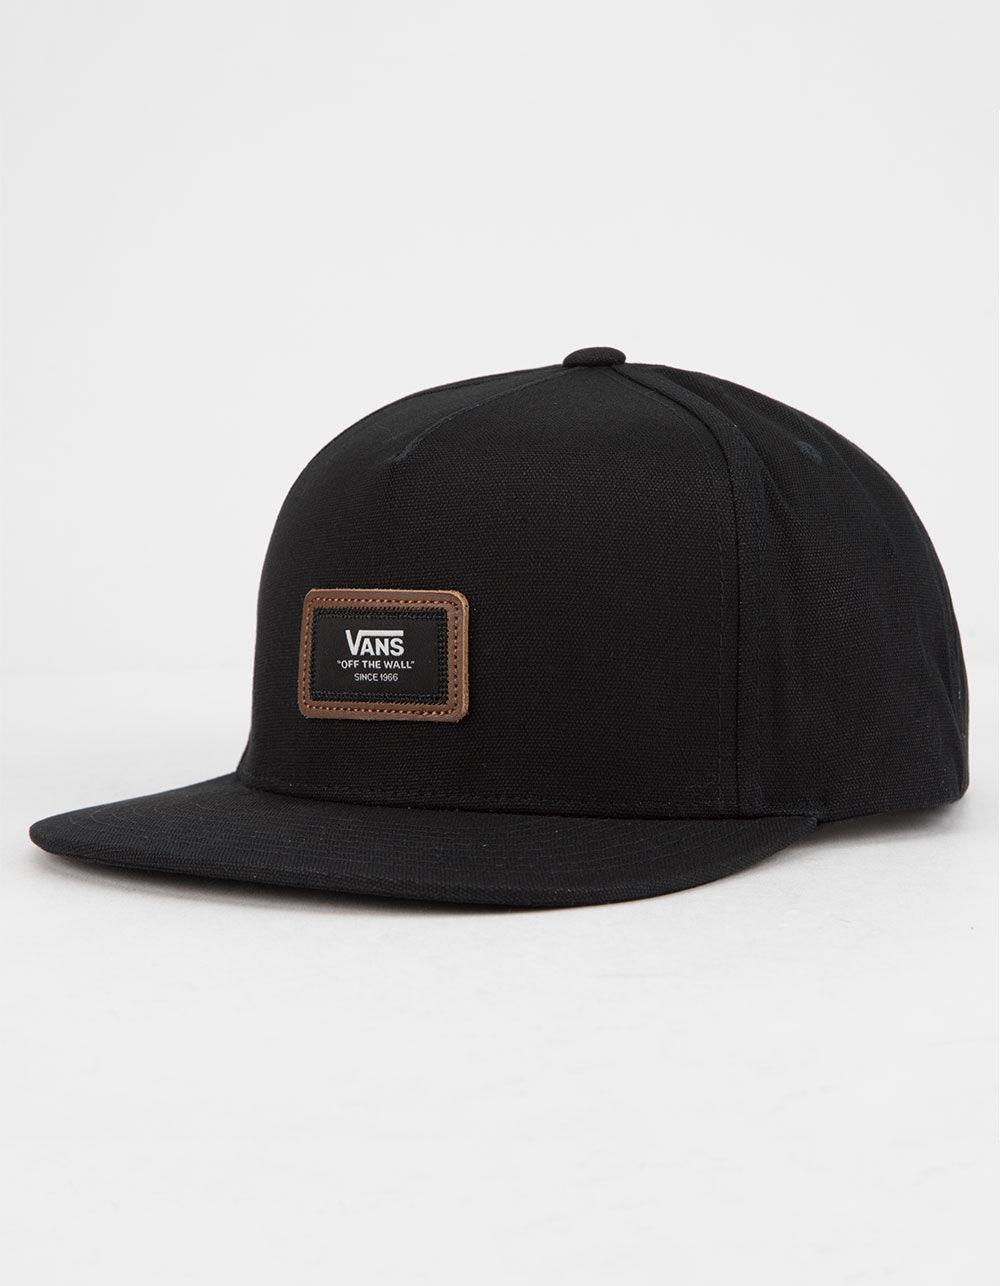 325a2b67d9577c Vans - Black Fiske Mens Snapback Hat for Men - Lyst. View fullscreen